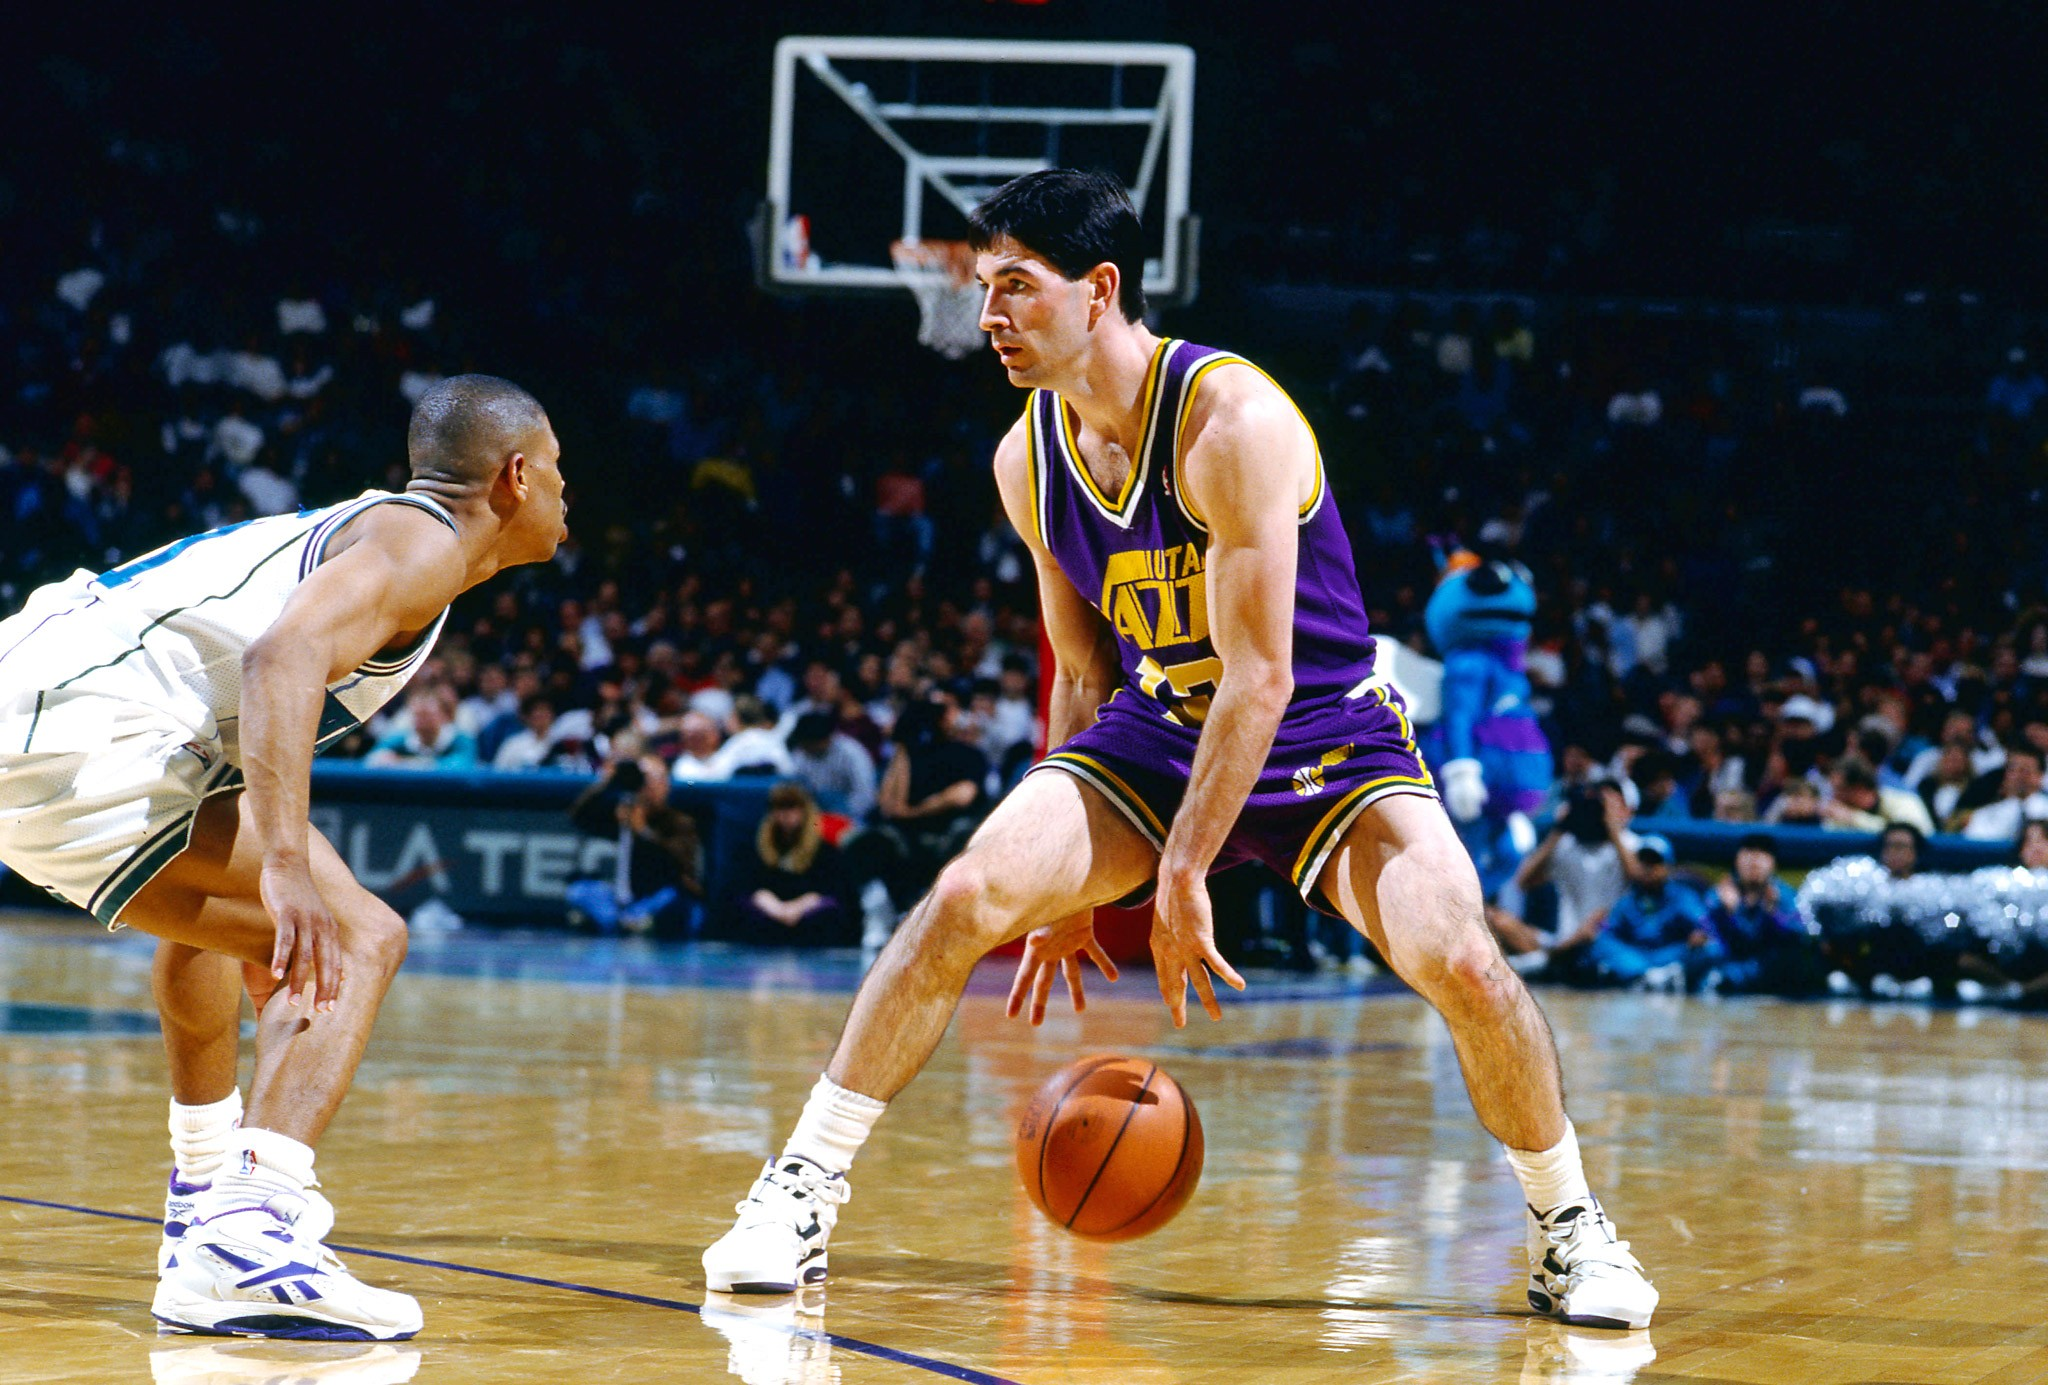 591b553047a These shorts are baggier than Stockton typically wore during his Hall of  Fame NBA career.